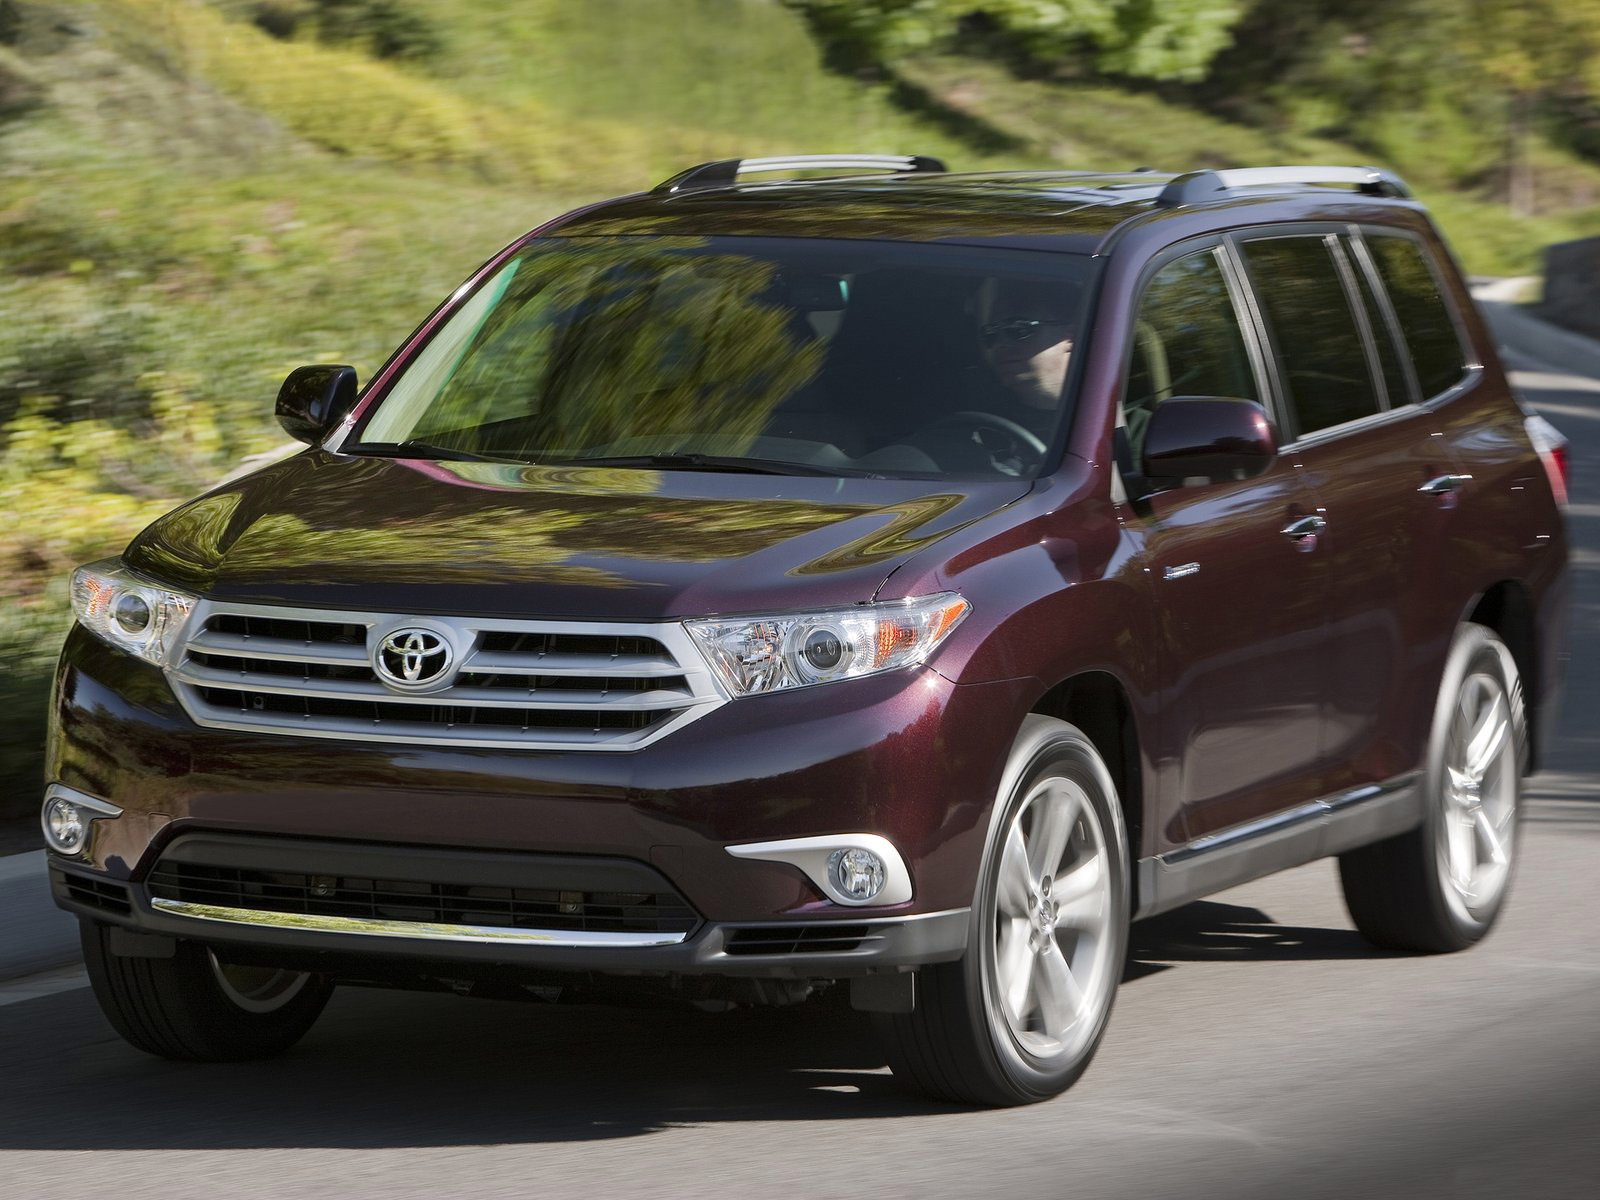 2011 Toyota Highlander Japanese Car Photos Accident Lawyers